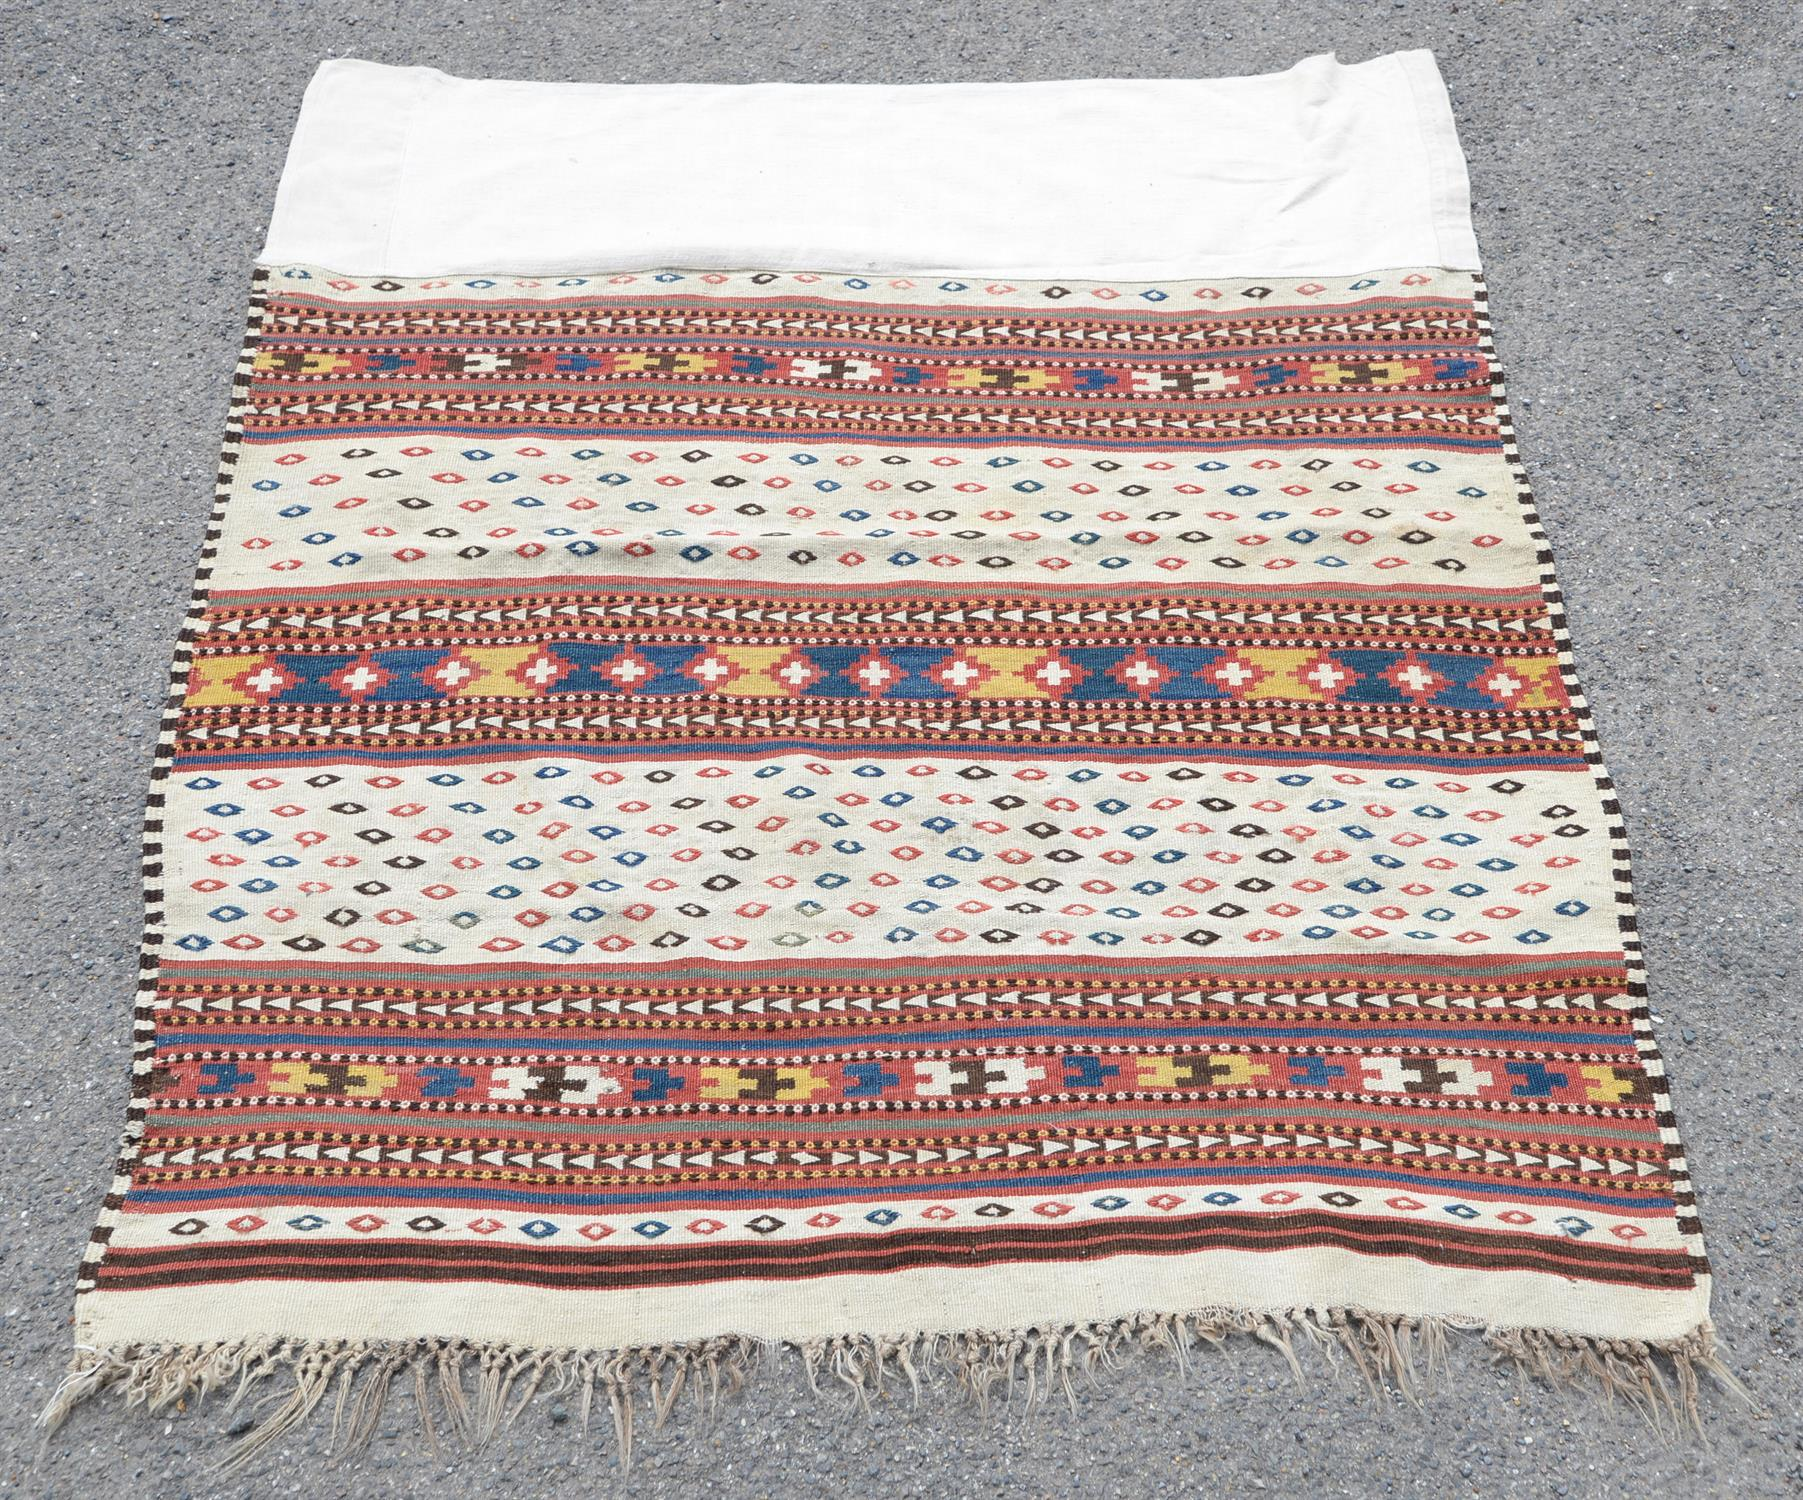 Tribal woven wall hanging with bands of geometric decoration, 124 x 130cm